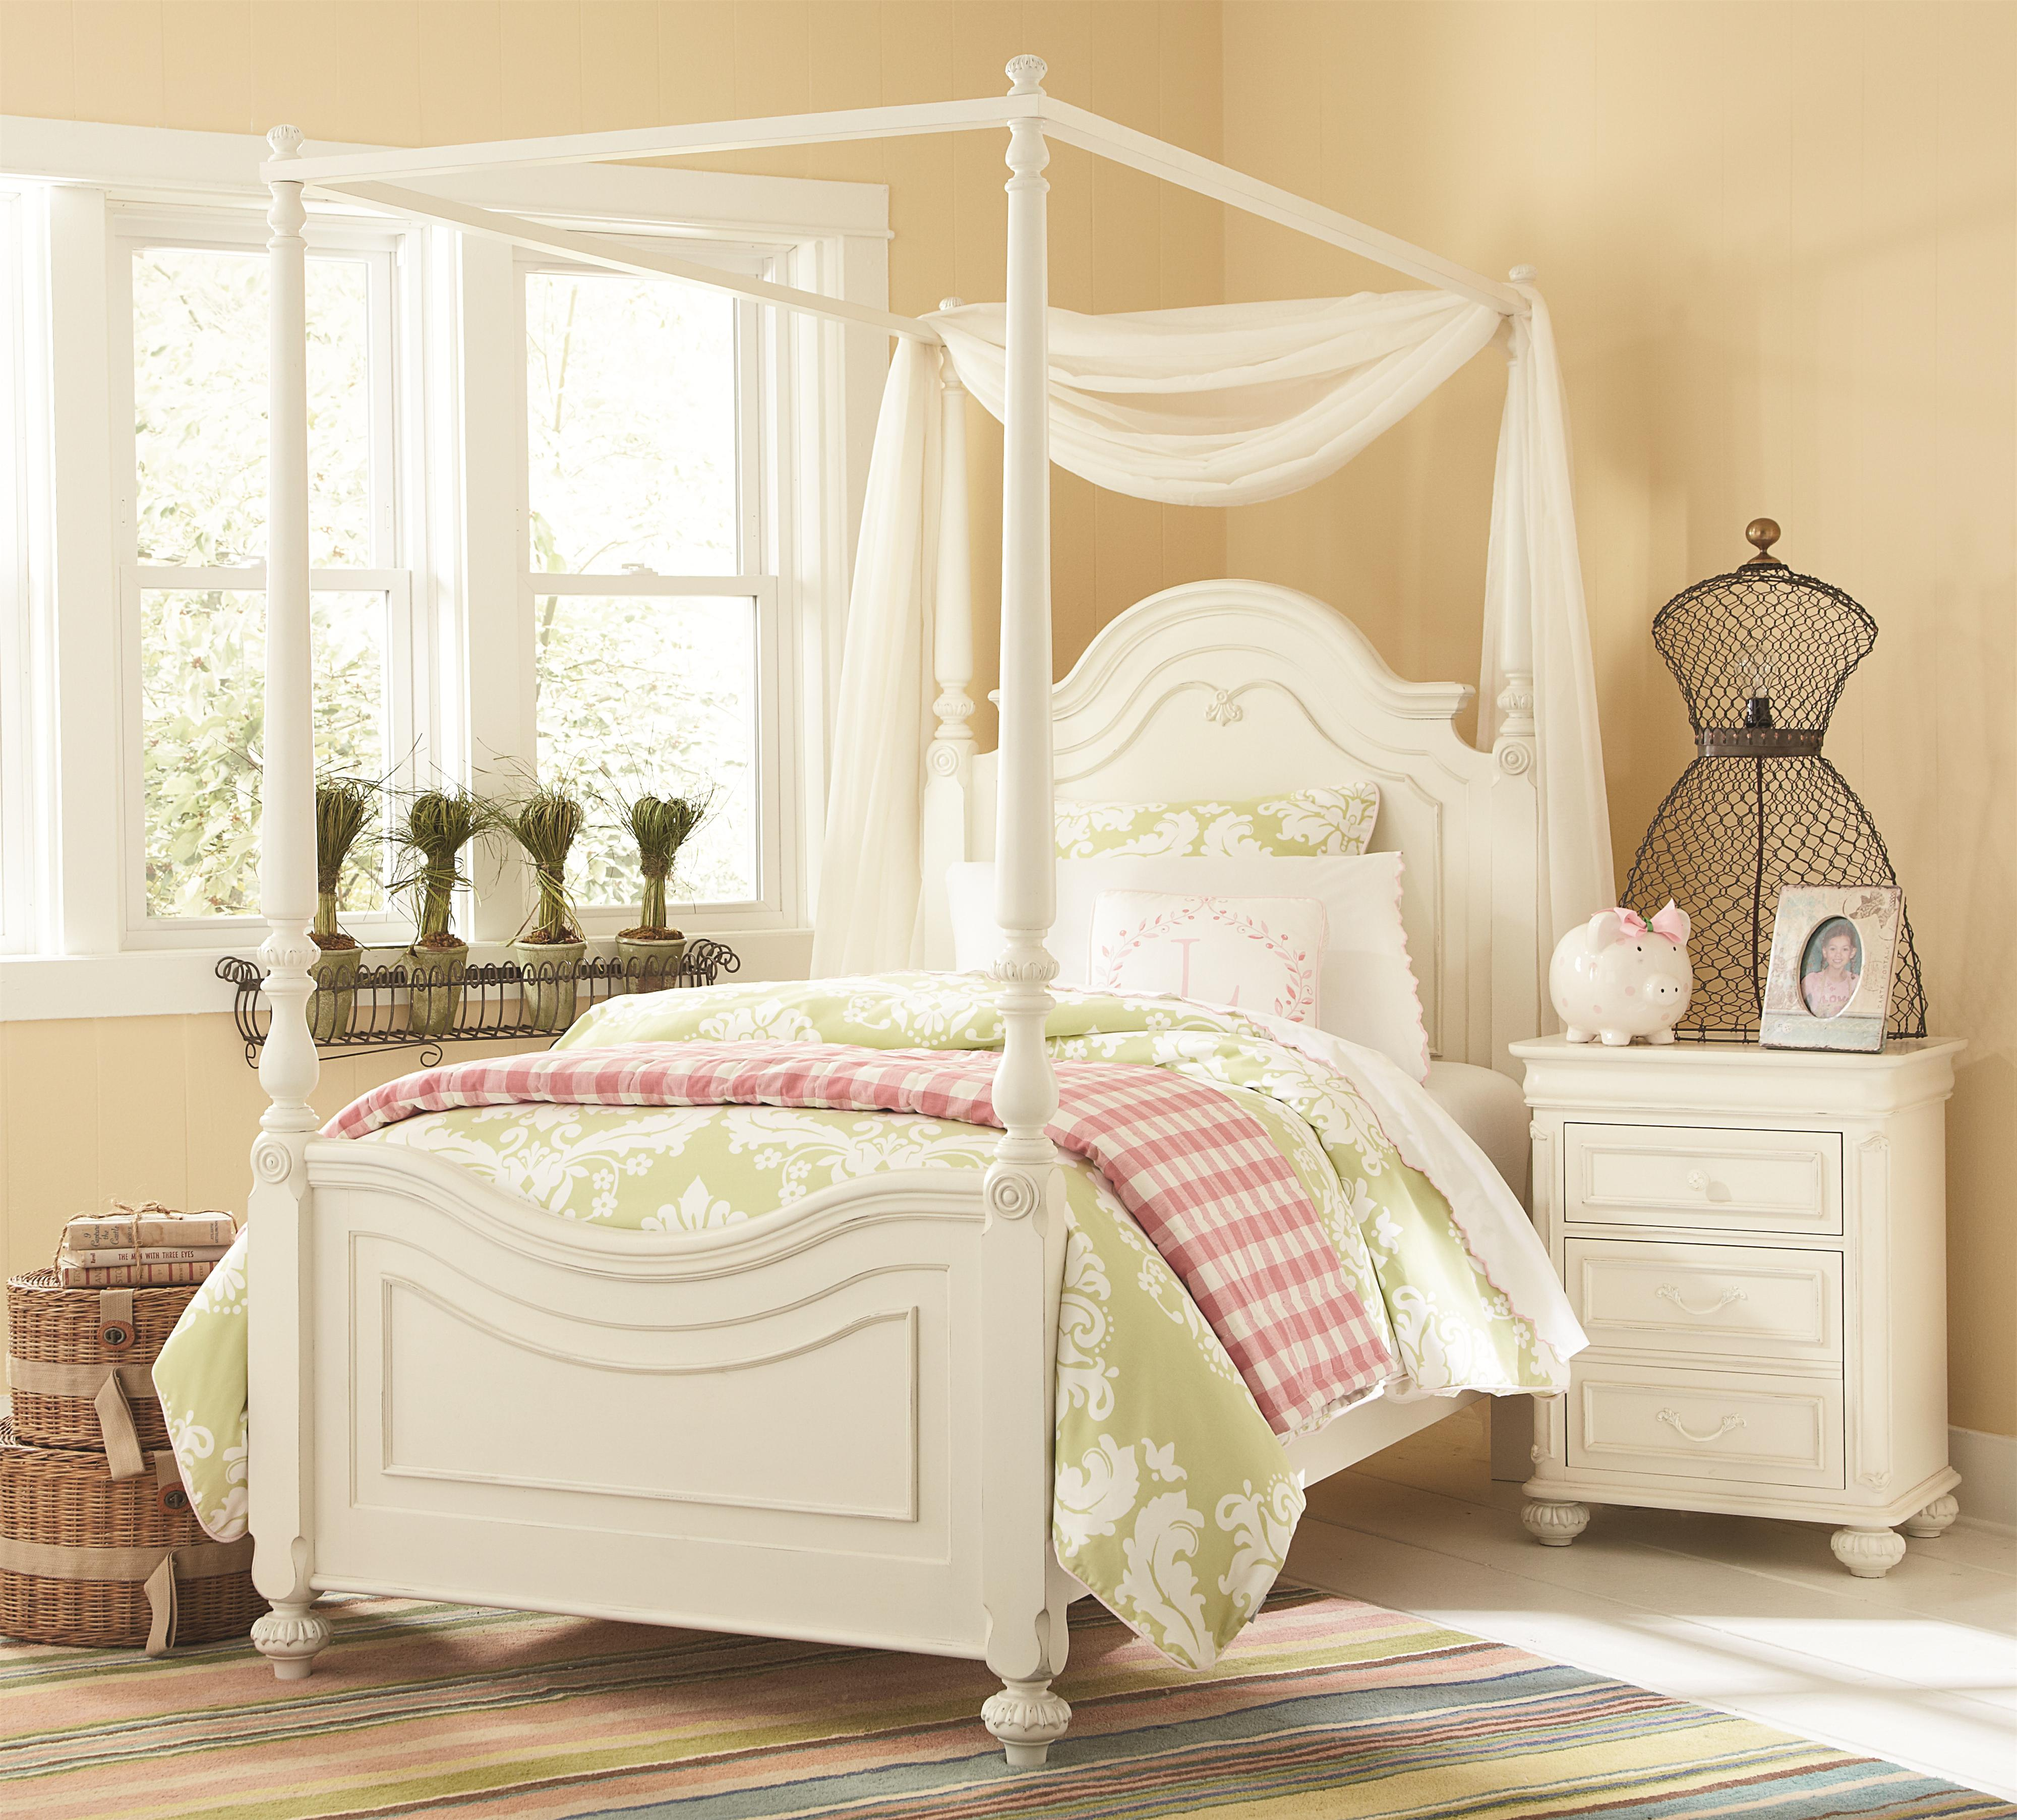 Rich Caramel Finish Classic Bedroom Set W Options: Night Stand With 2 Drawers By Legacy Classic Kids